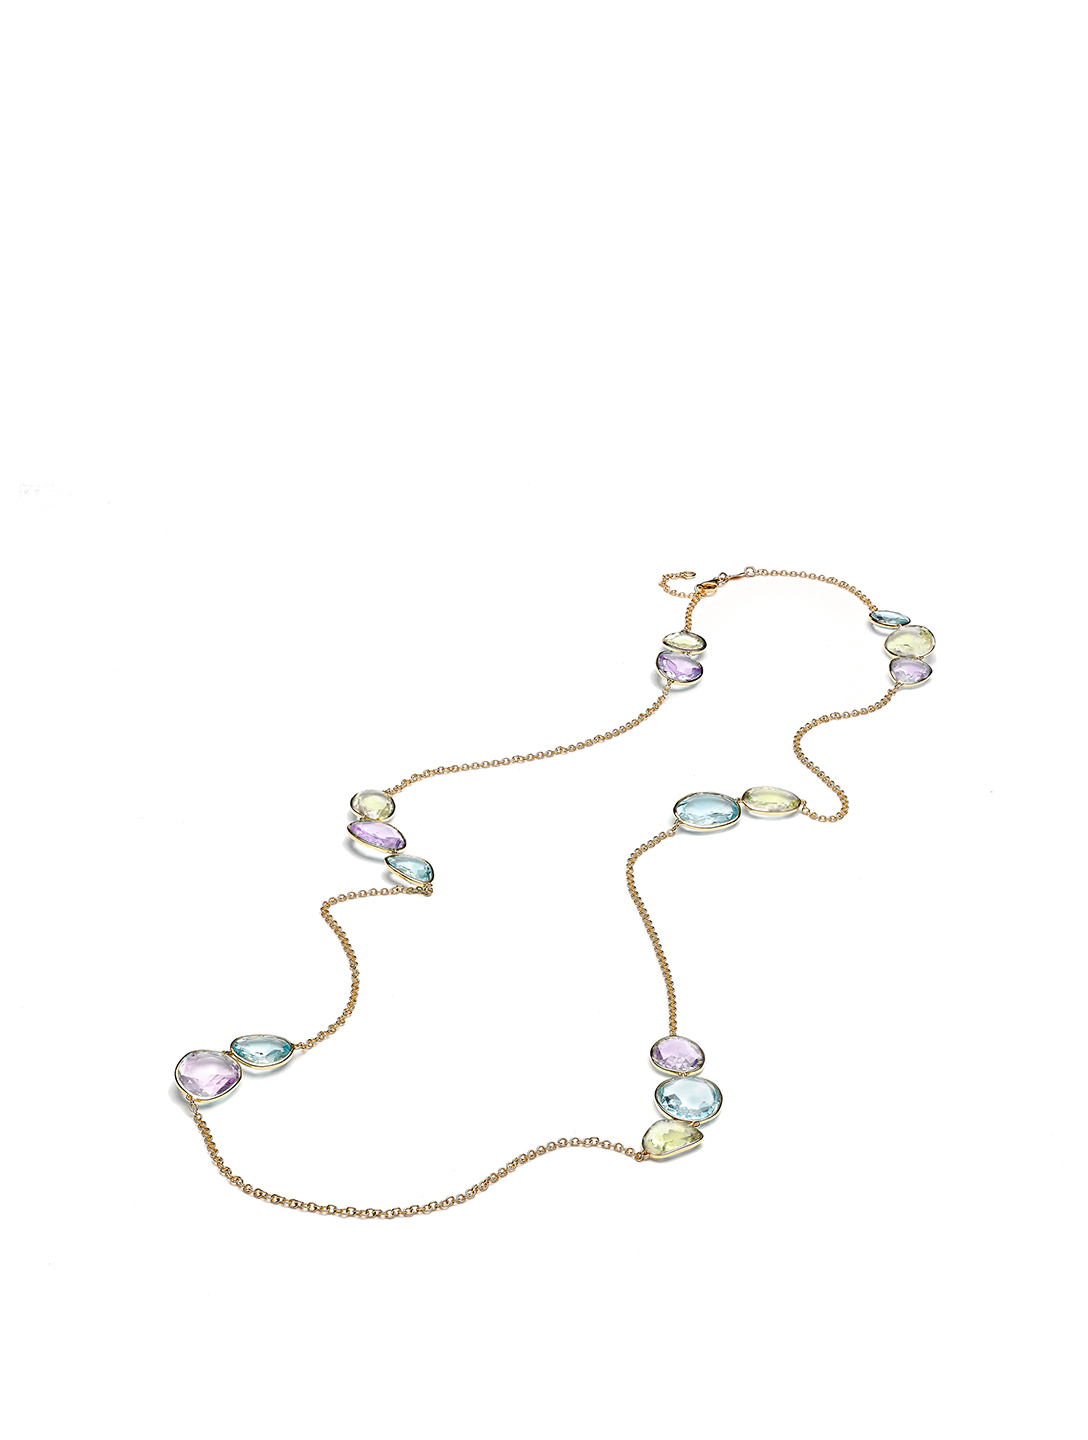 KIKI MCDONOUGH Candy 18K Gold Long Necklace With Multicolour Stones Women's Metallic